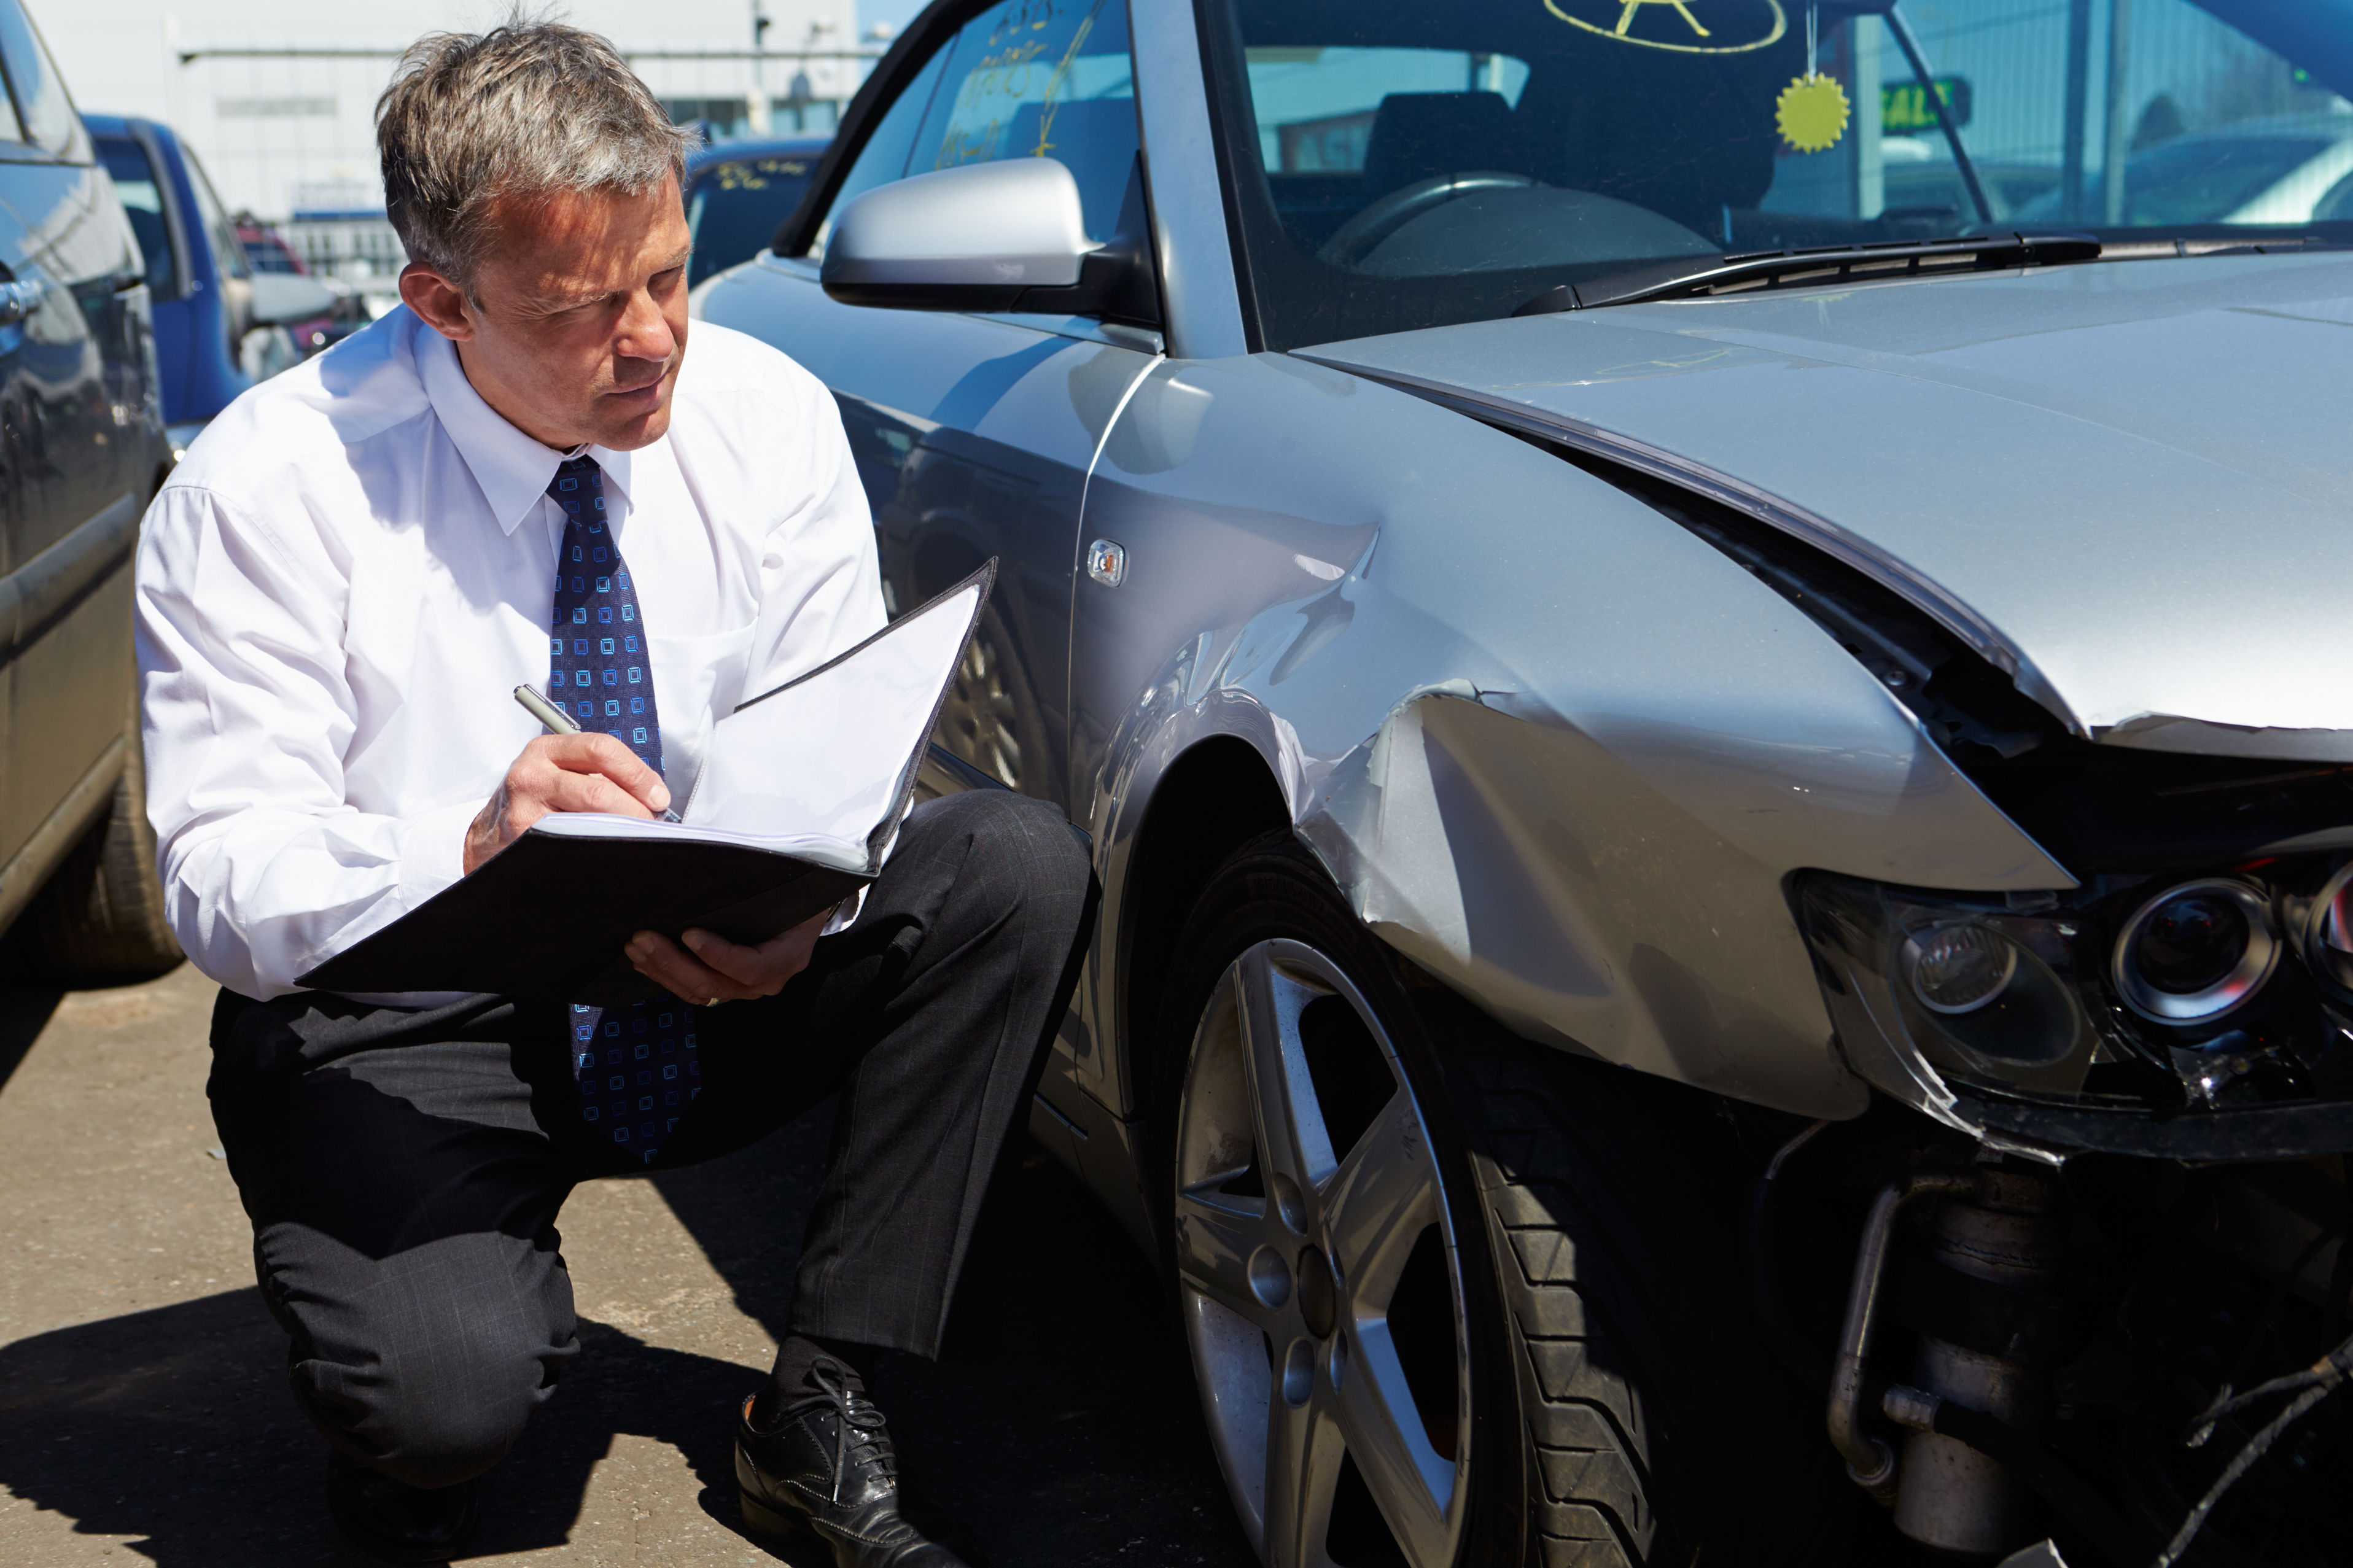 Why You Should Get a Lawyer After a Car Accident?